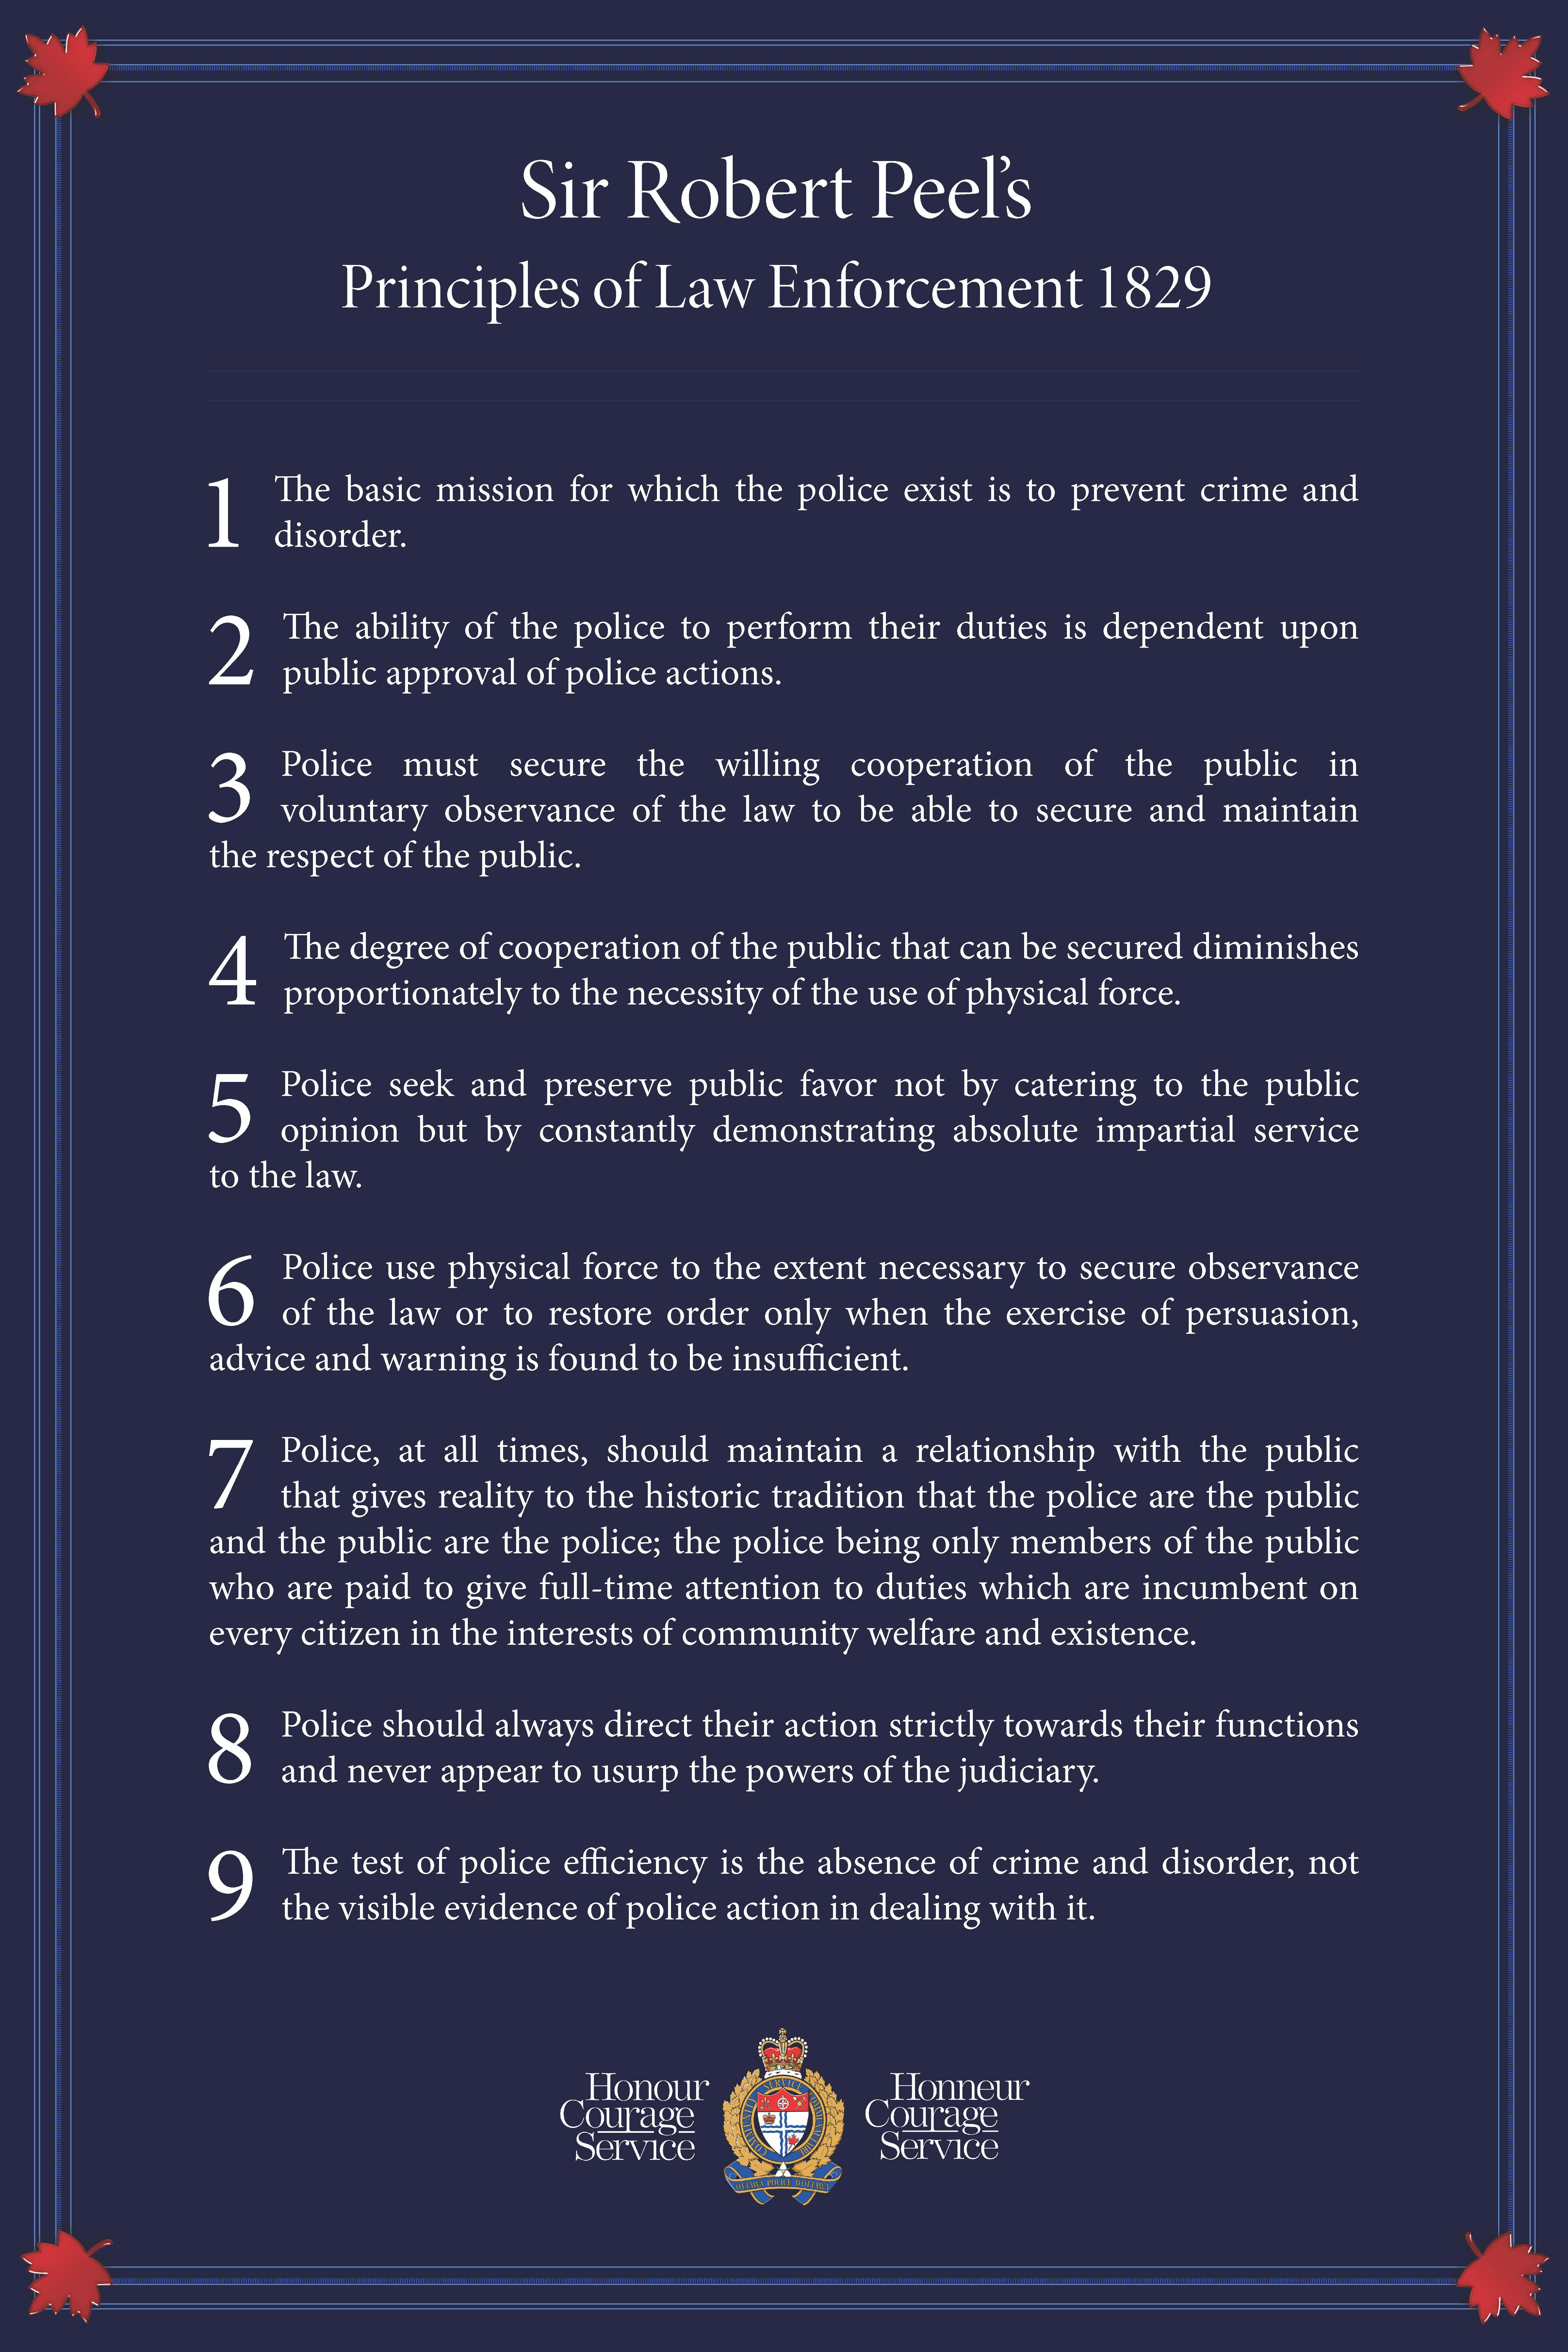 Principles of Law Enforcement